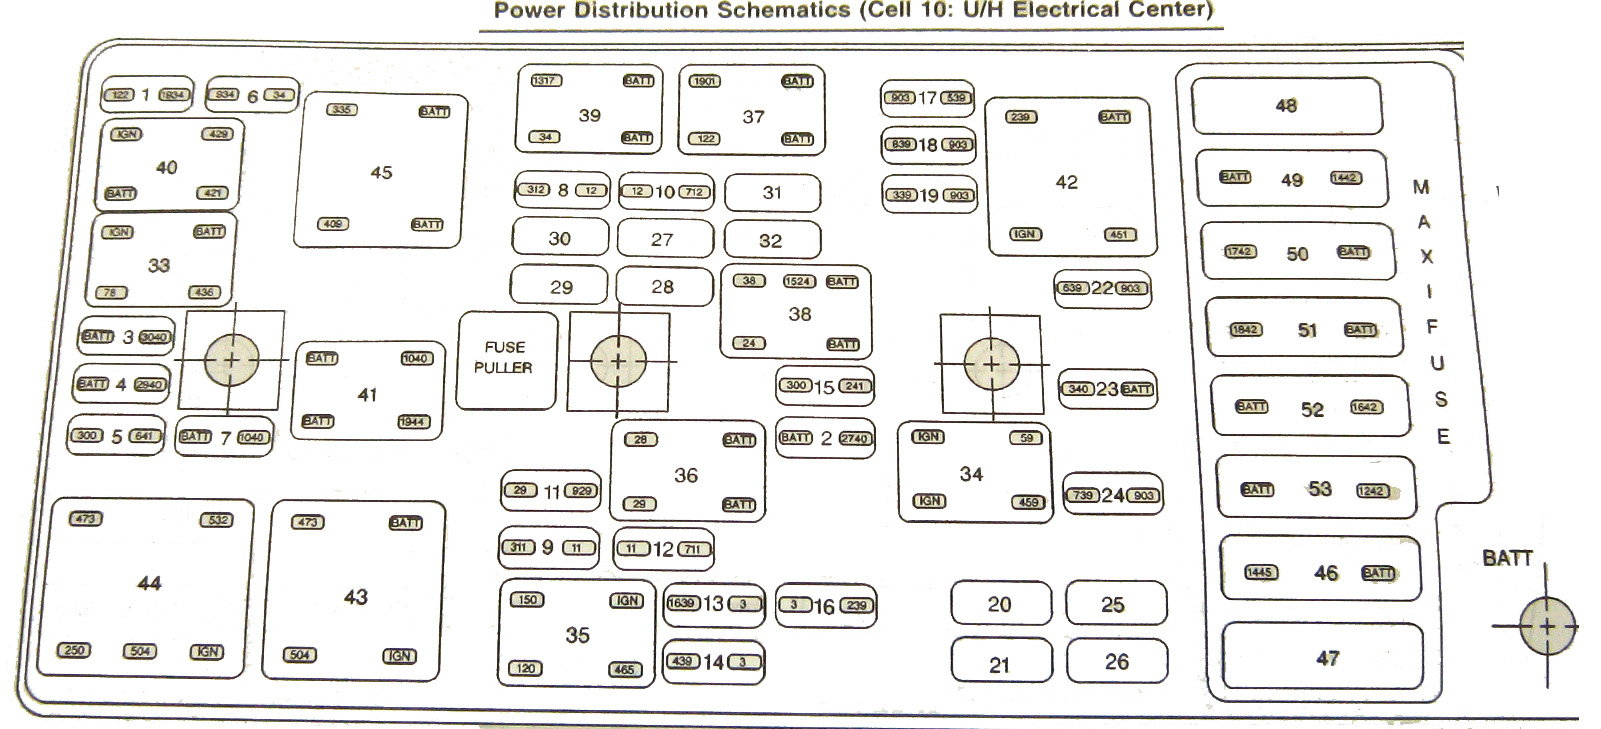 hight resolution of c5 corvette fuse diagram wiring diagram expert c5 allroad fuse box diagram c5 fuse box diagram